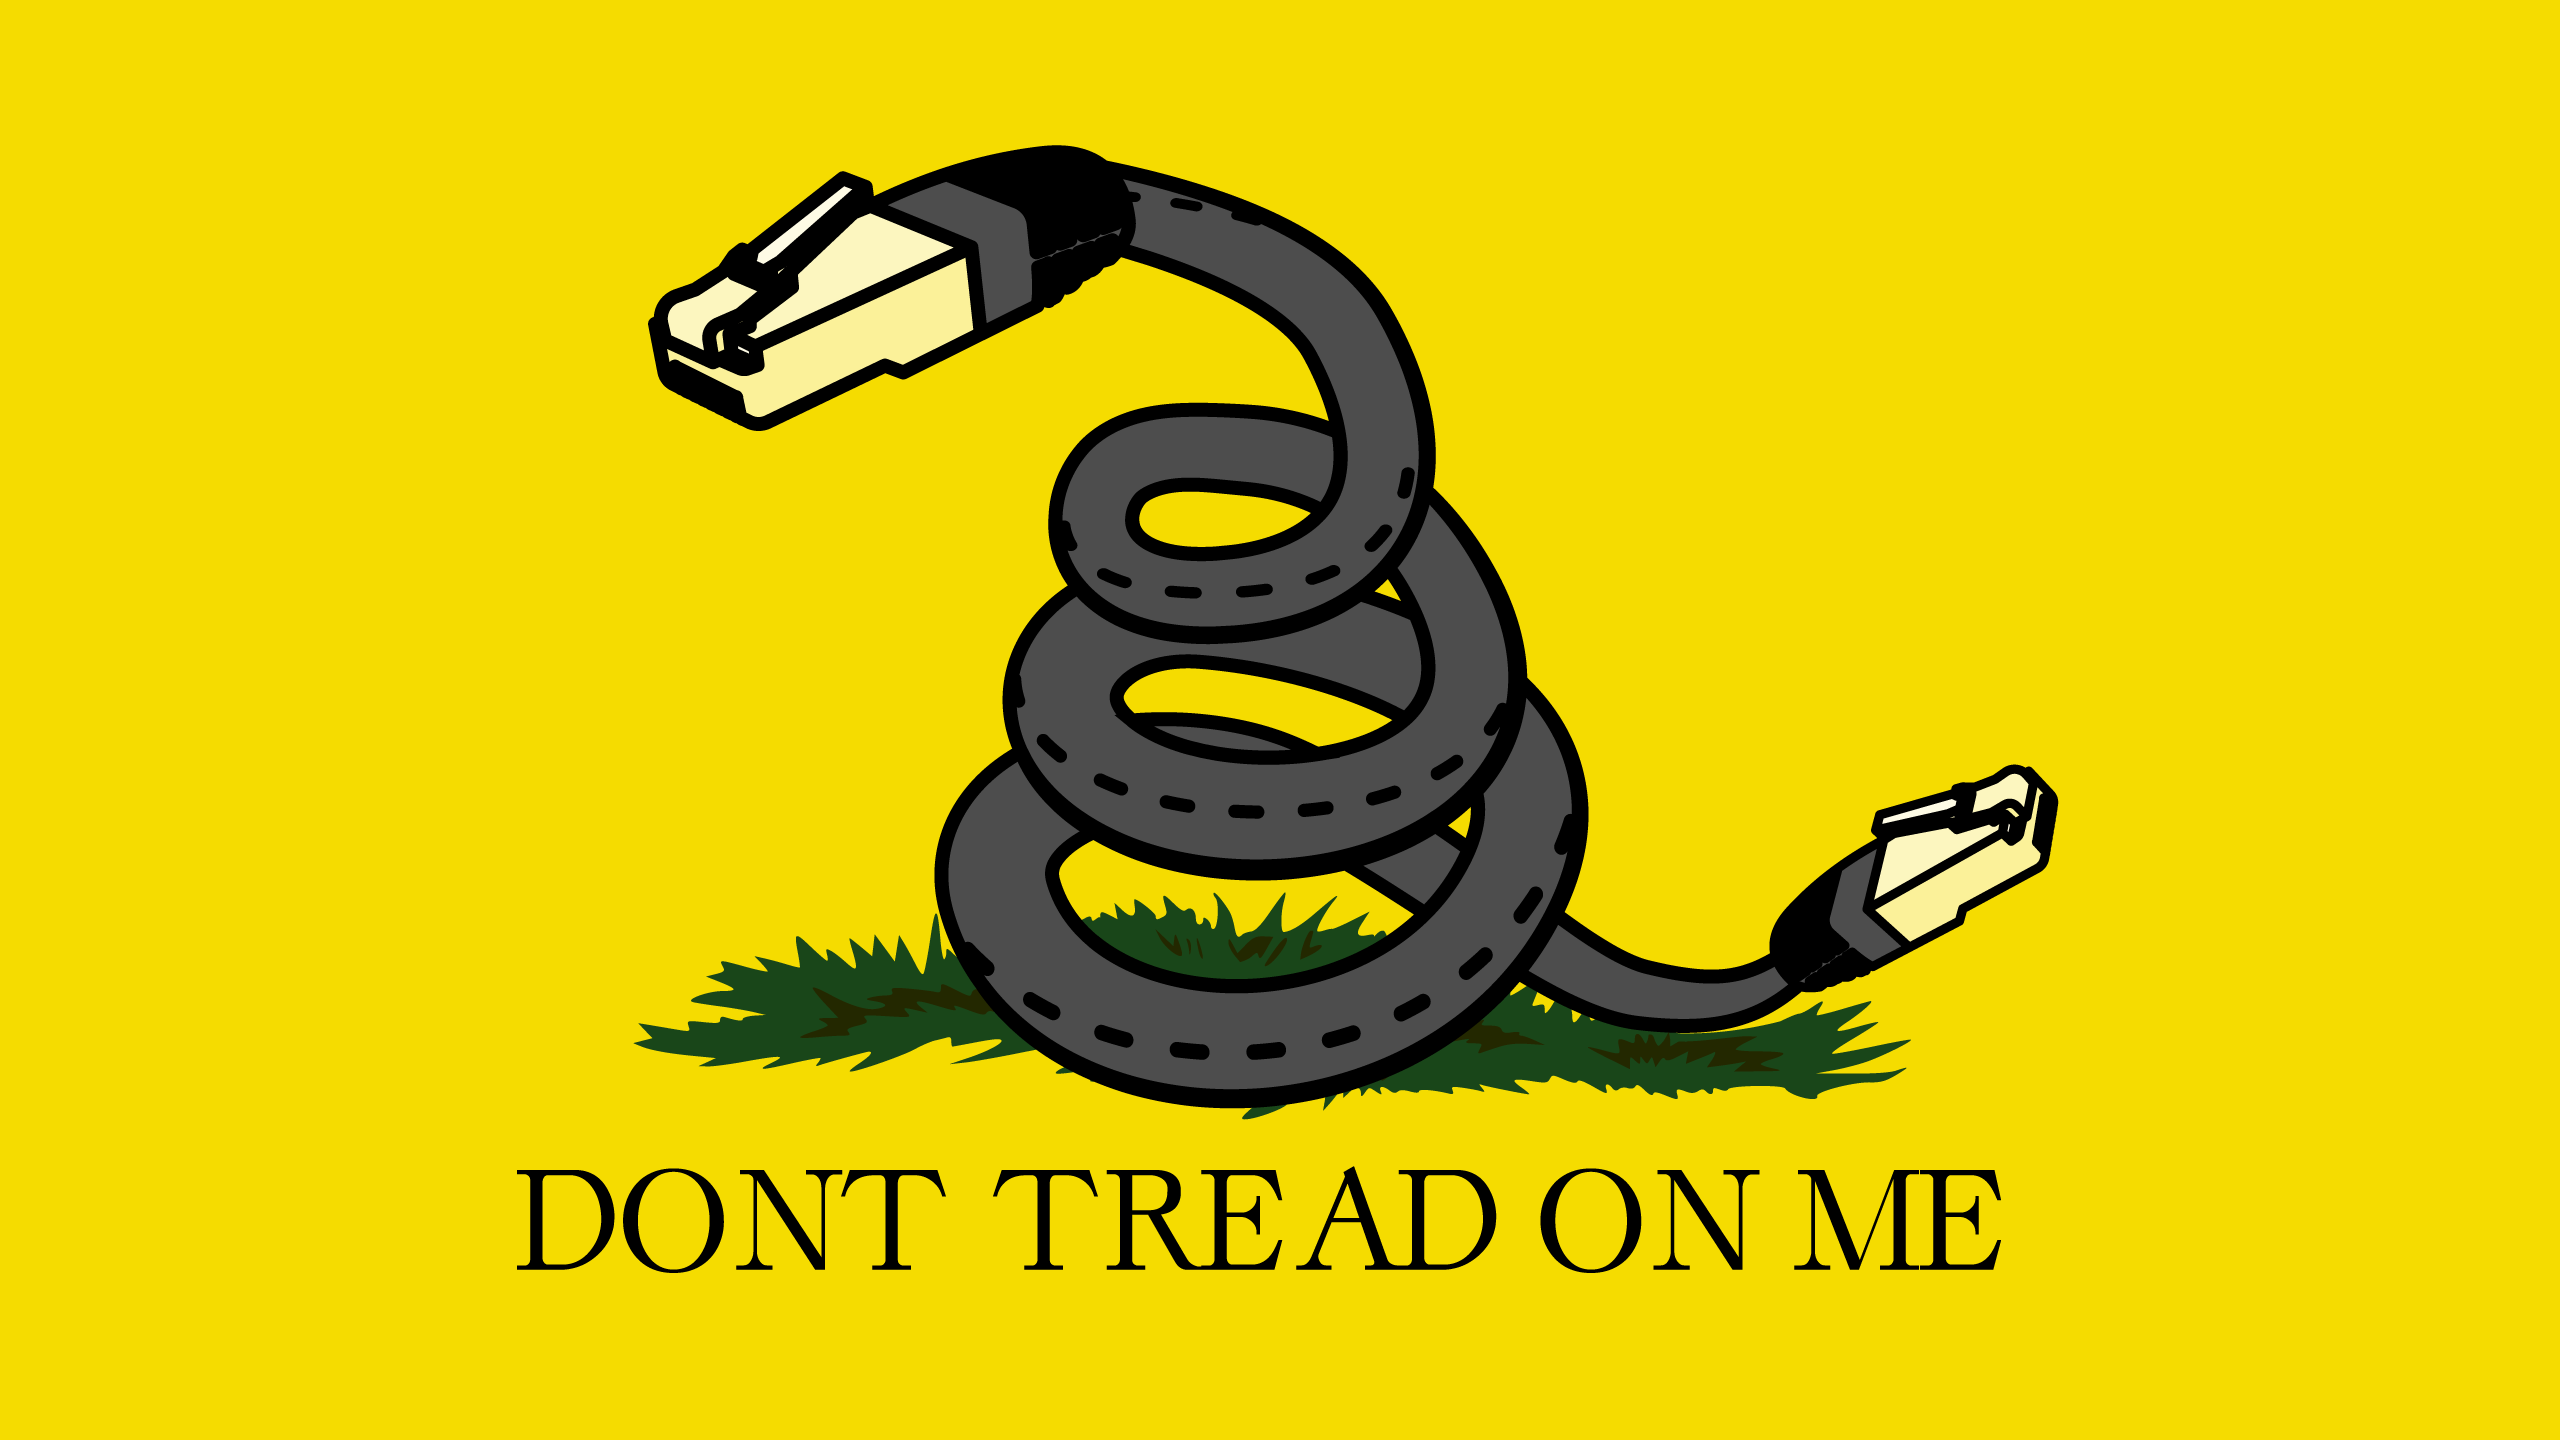 Lawsuit filed by 22 state attorneys general seeks to block net neutrality repeal